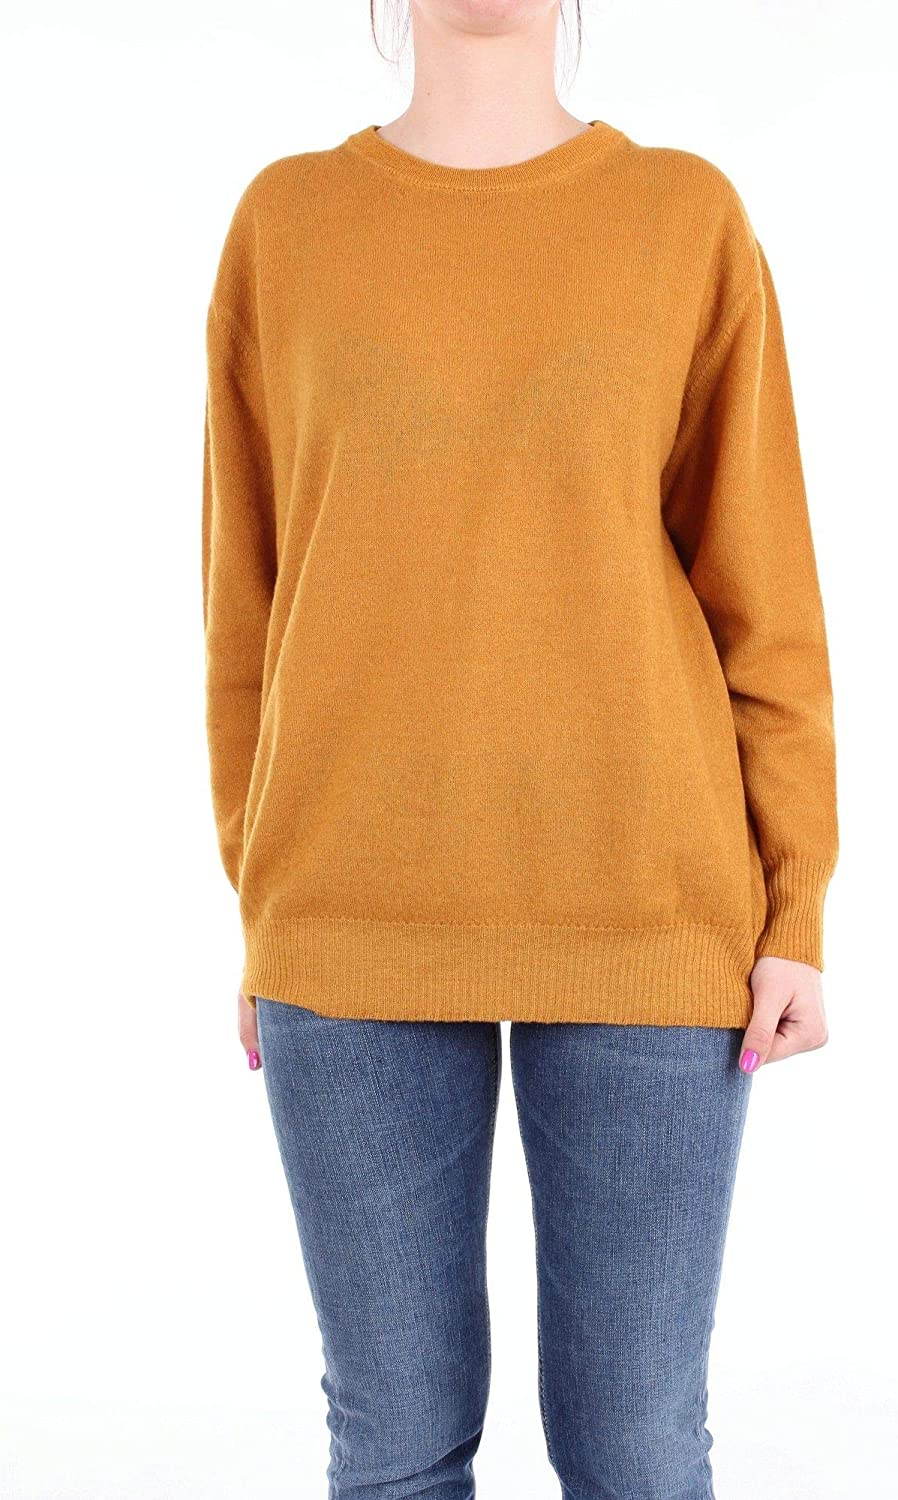 Altea Women's 1861500YELLOW Yellow Wool Sweater